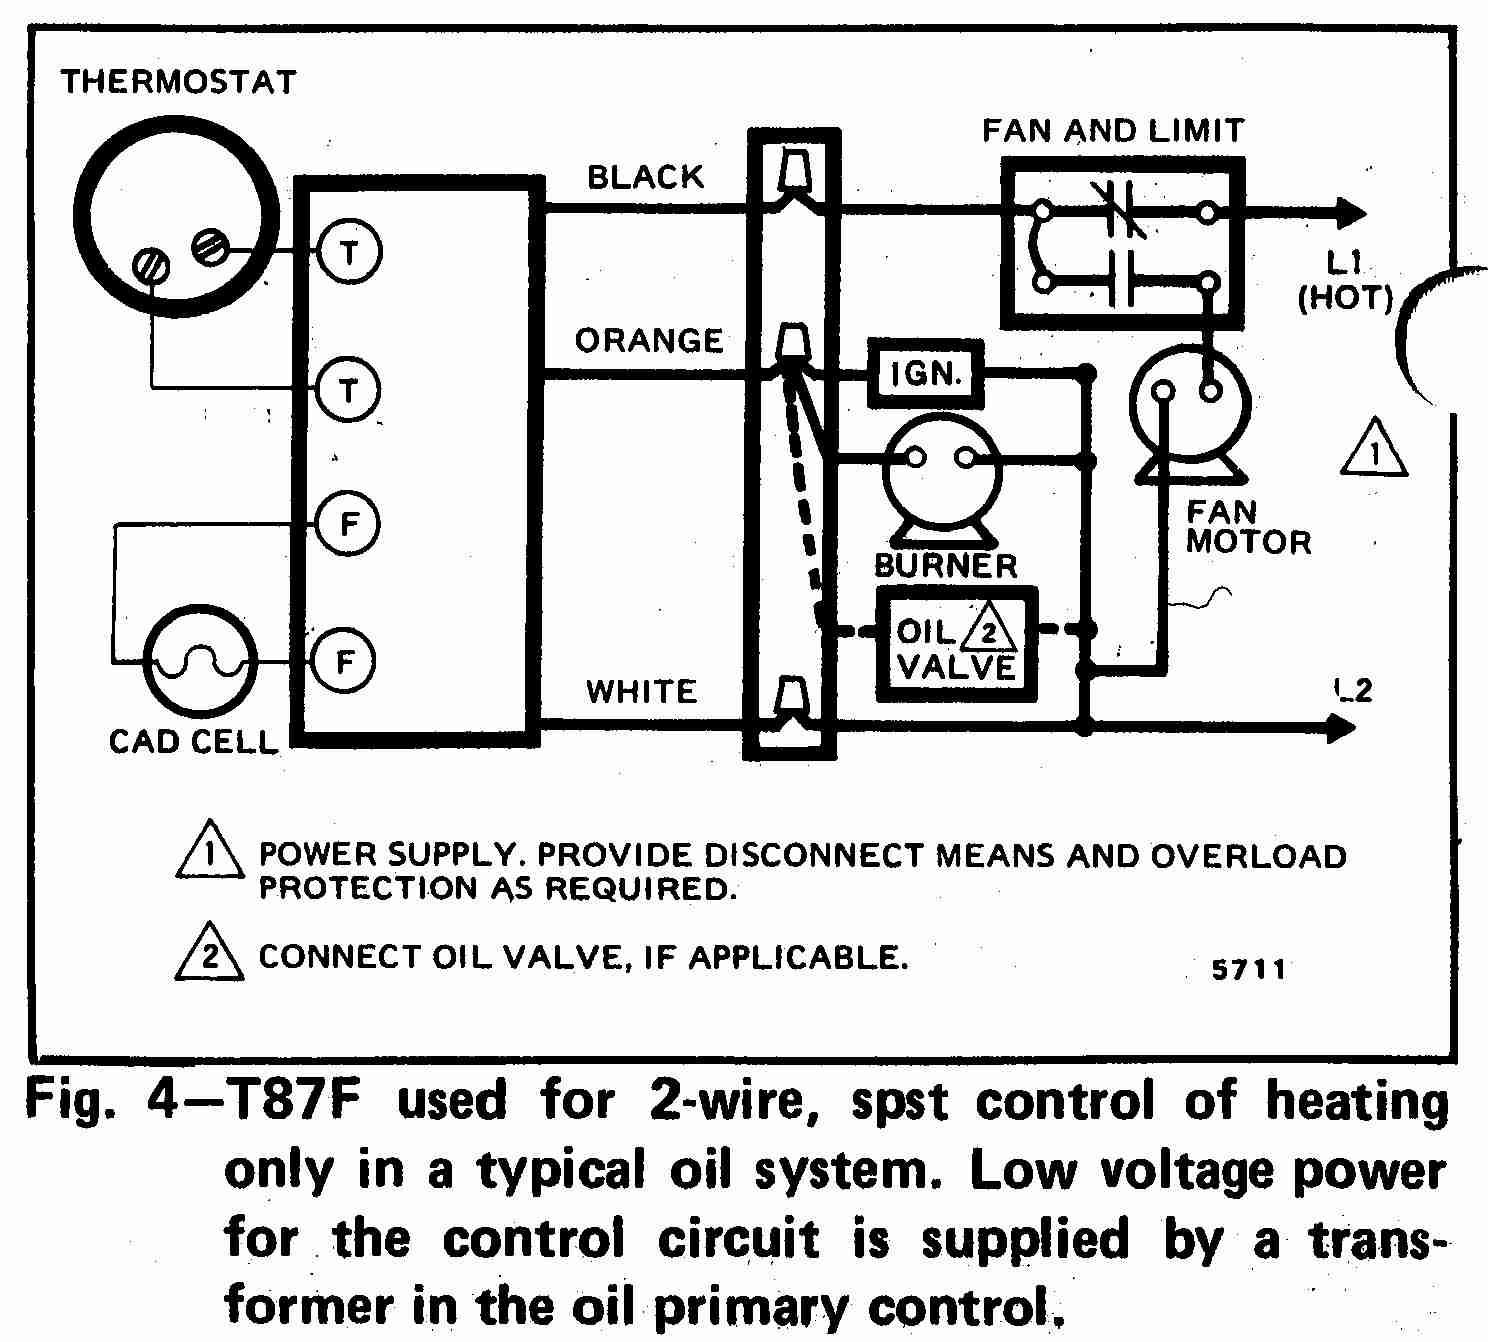 hight resolution of room thermostat wiring diagrams for hvac systems rh inspectapedia com wiring diagram hvac thermostat capacitor wiring